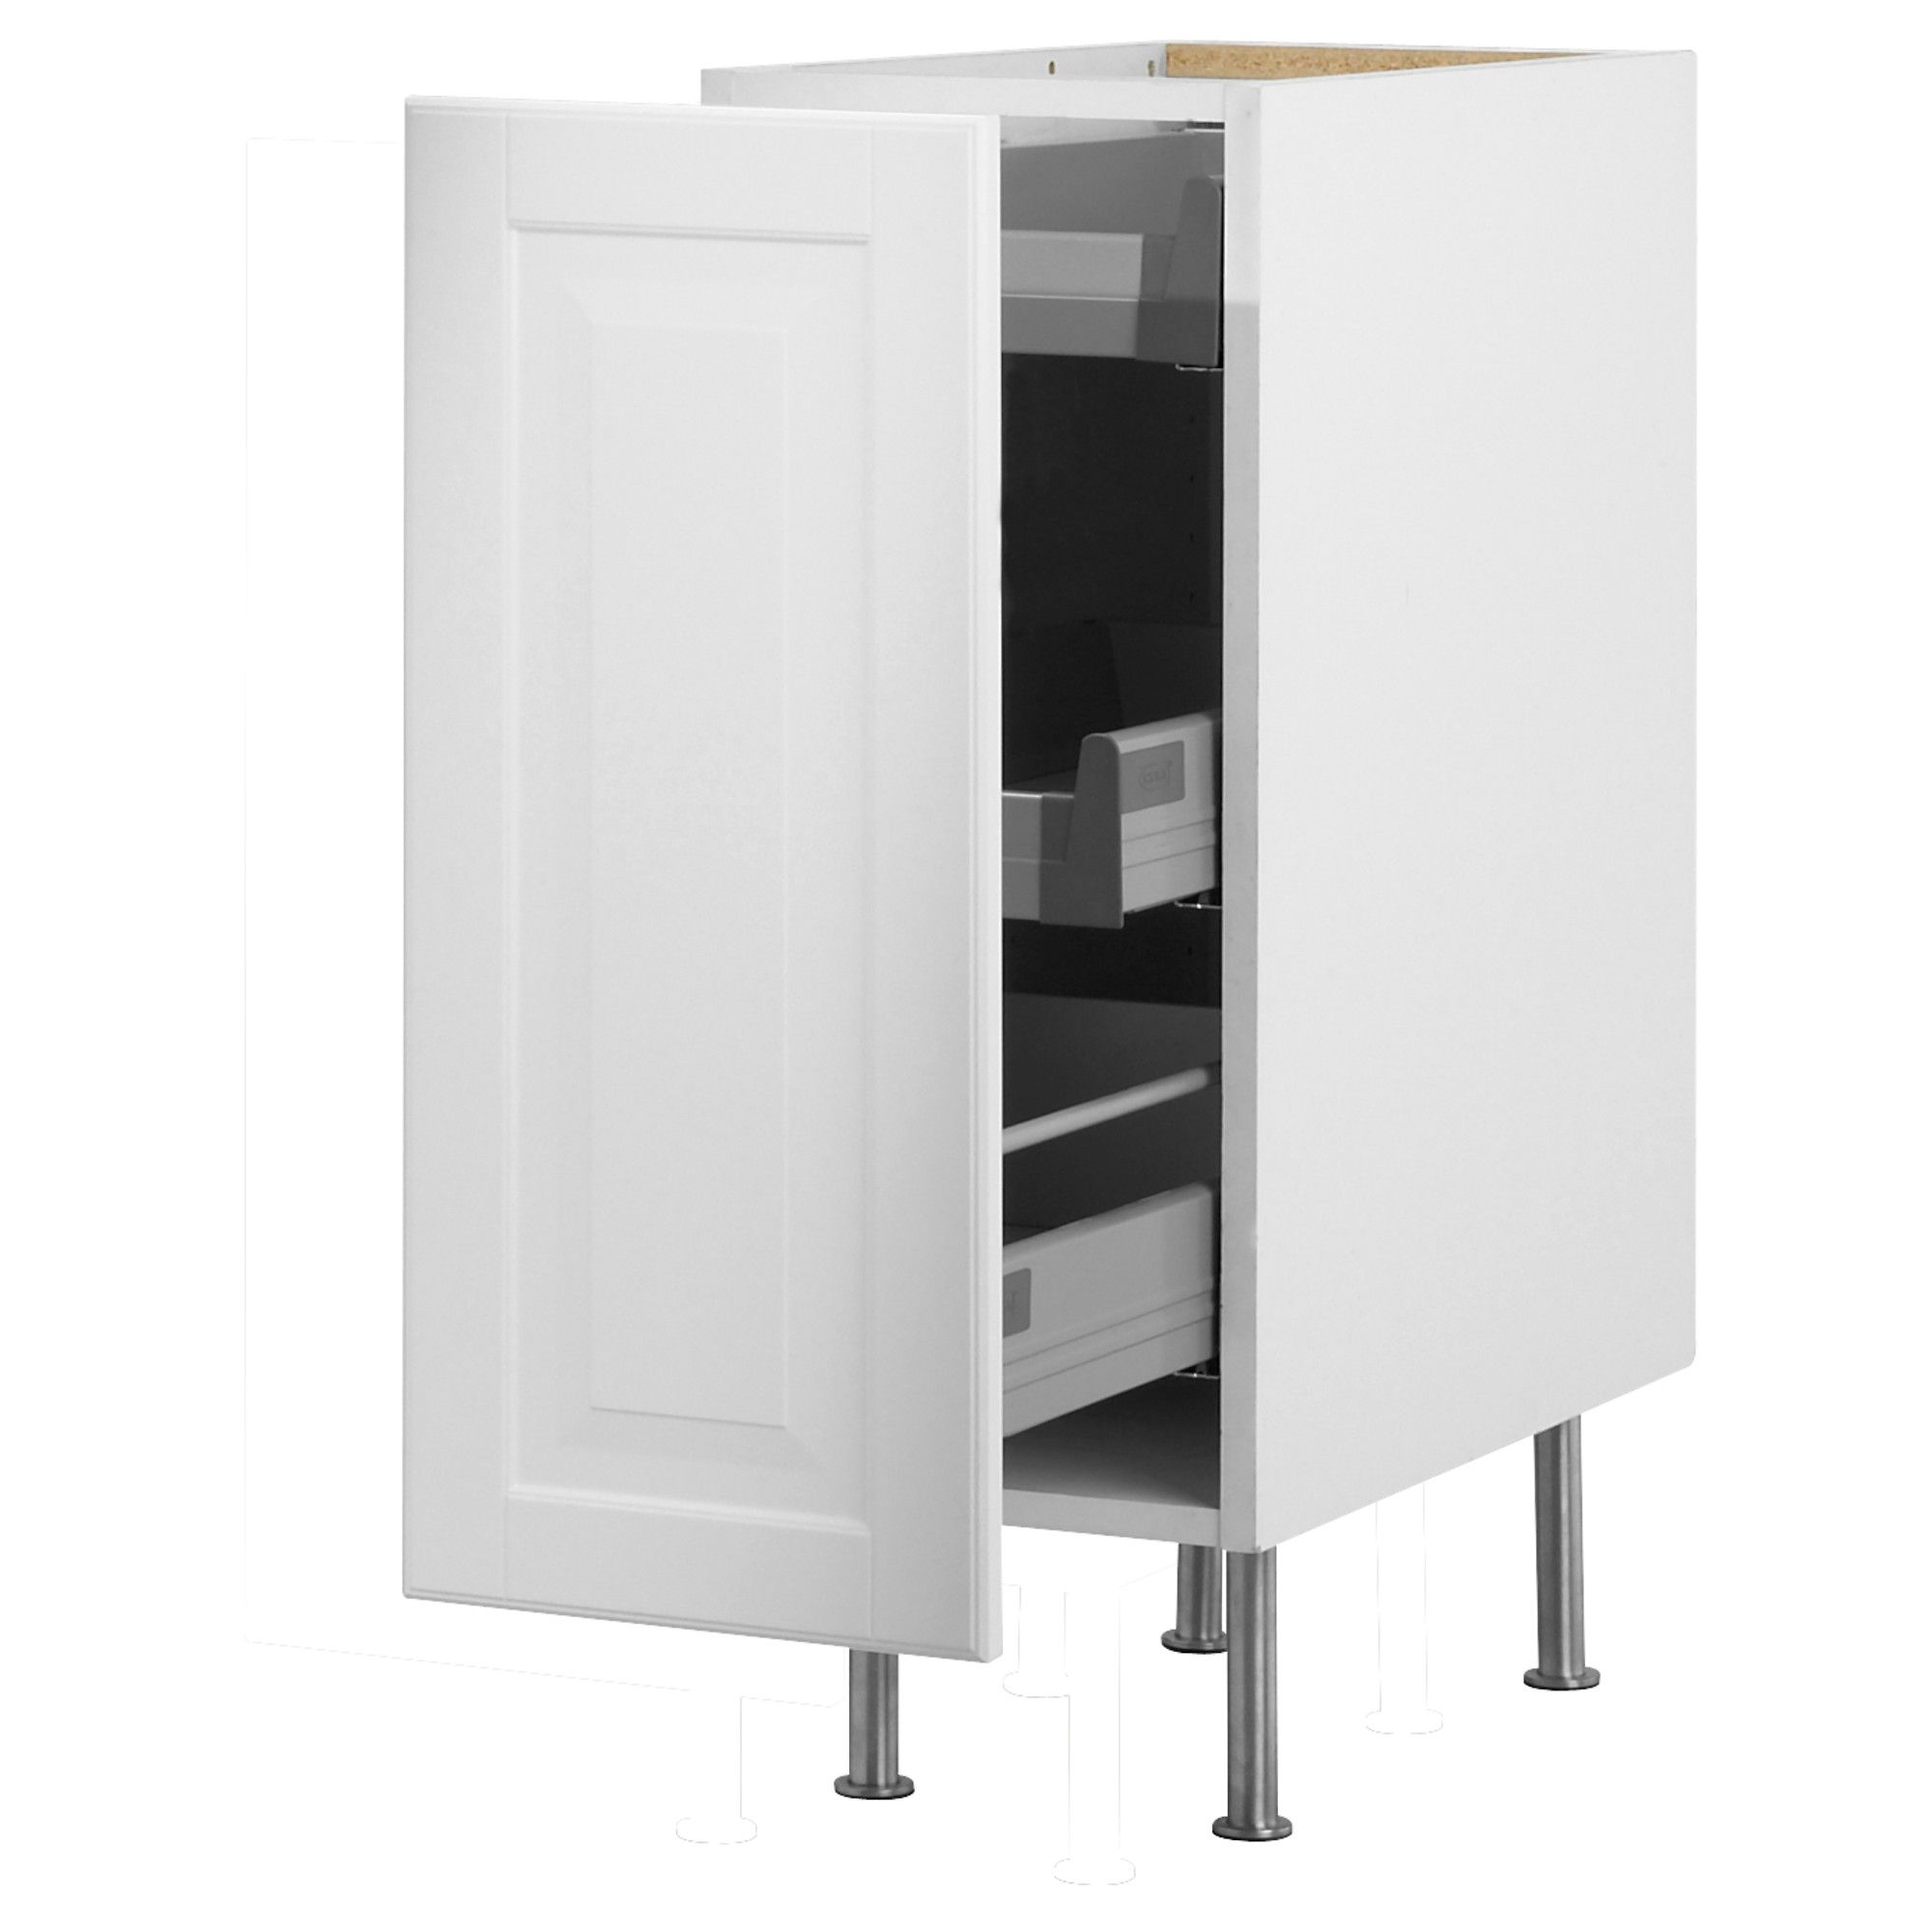 AKURUM Base Cabinet With Pull Out Storage IKEA Built In Dampers Make The  Doors Close Slowly, Quietly And Softly. Smooth Running Drawers With.